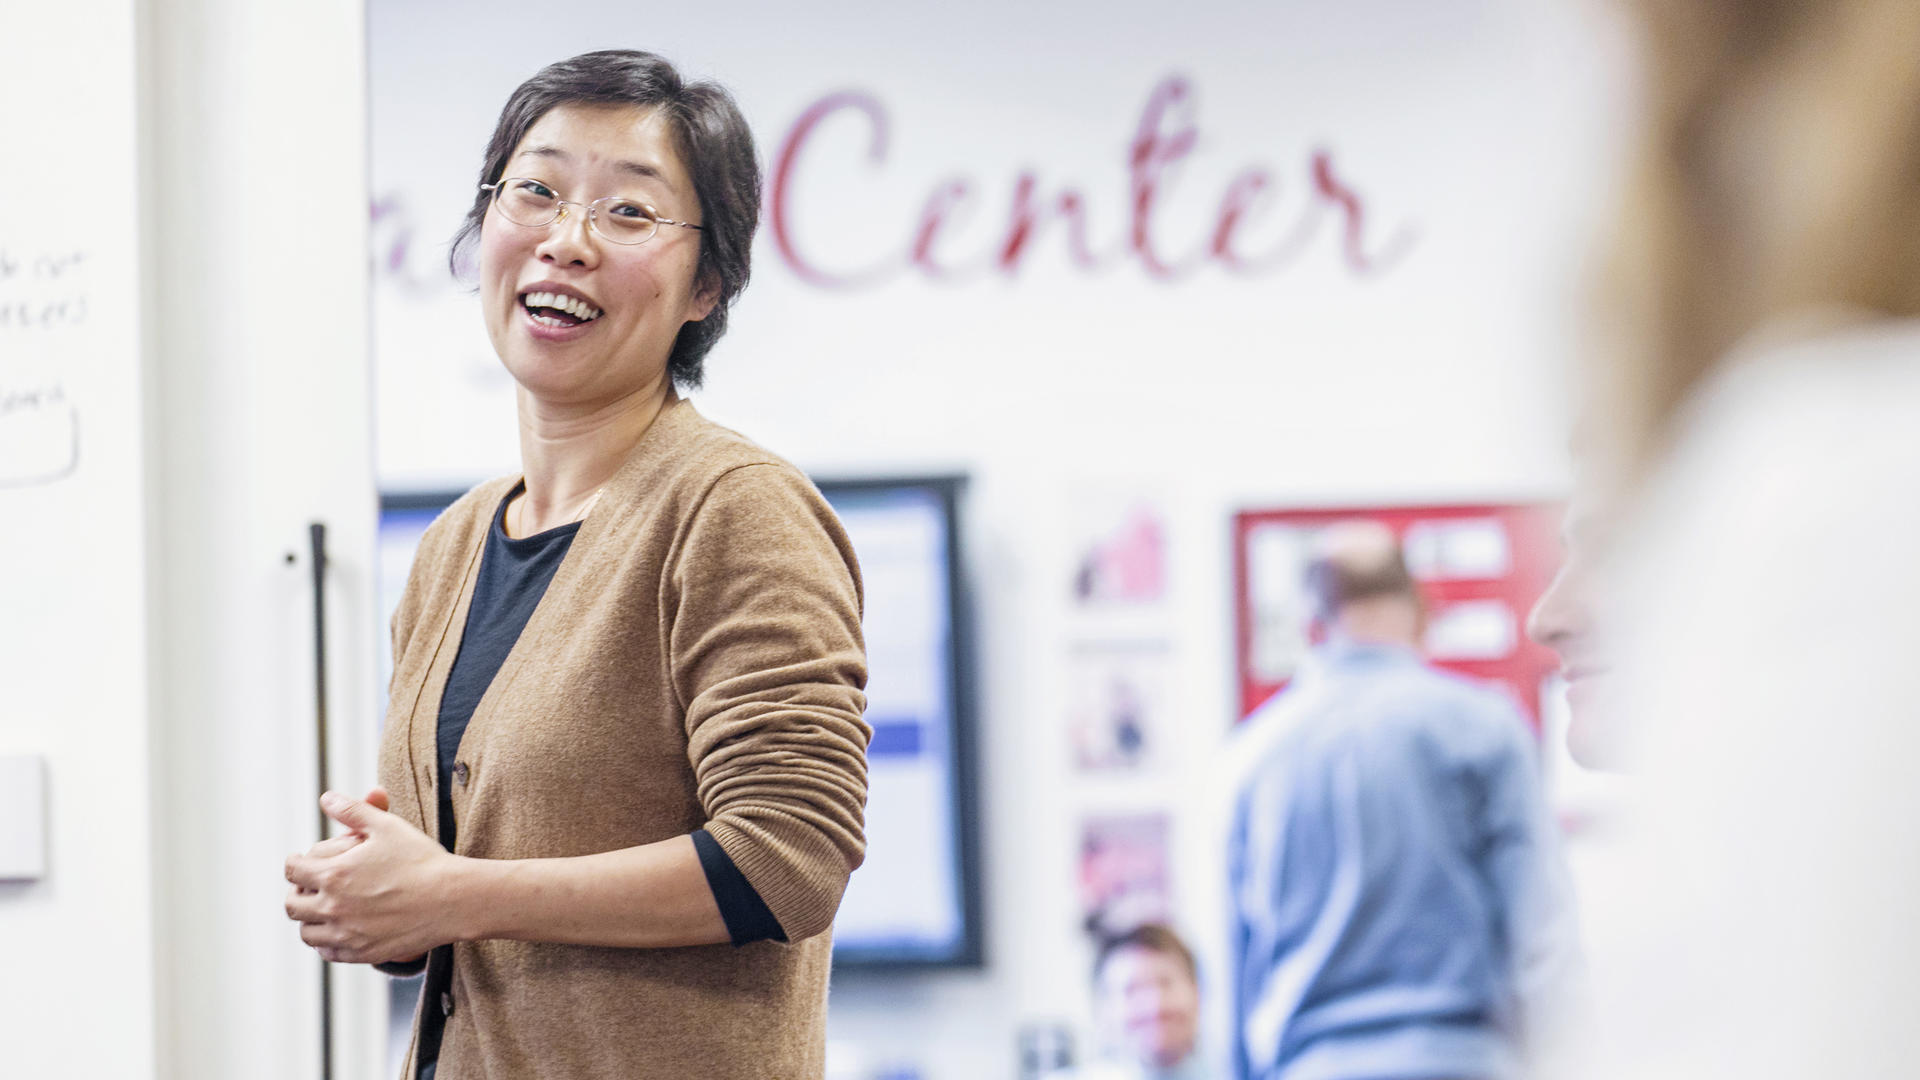 An Asian woman in a tan sweater laughs with students